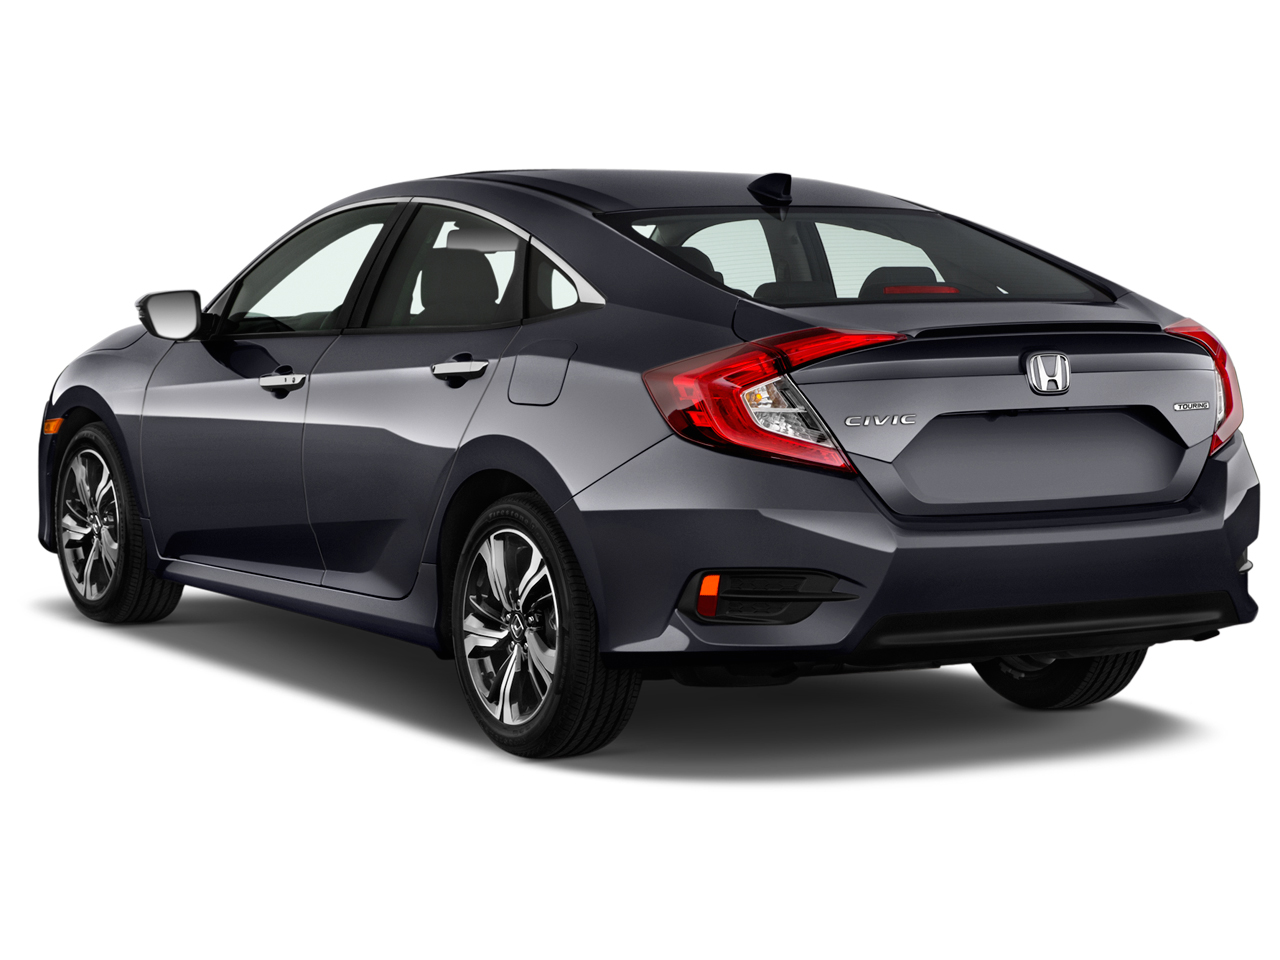 Honda Civic 2018 1.6L DX, United Arab Emirates